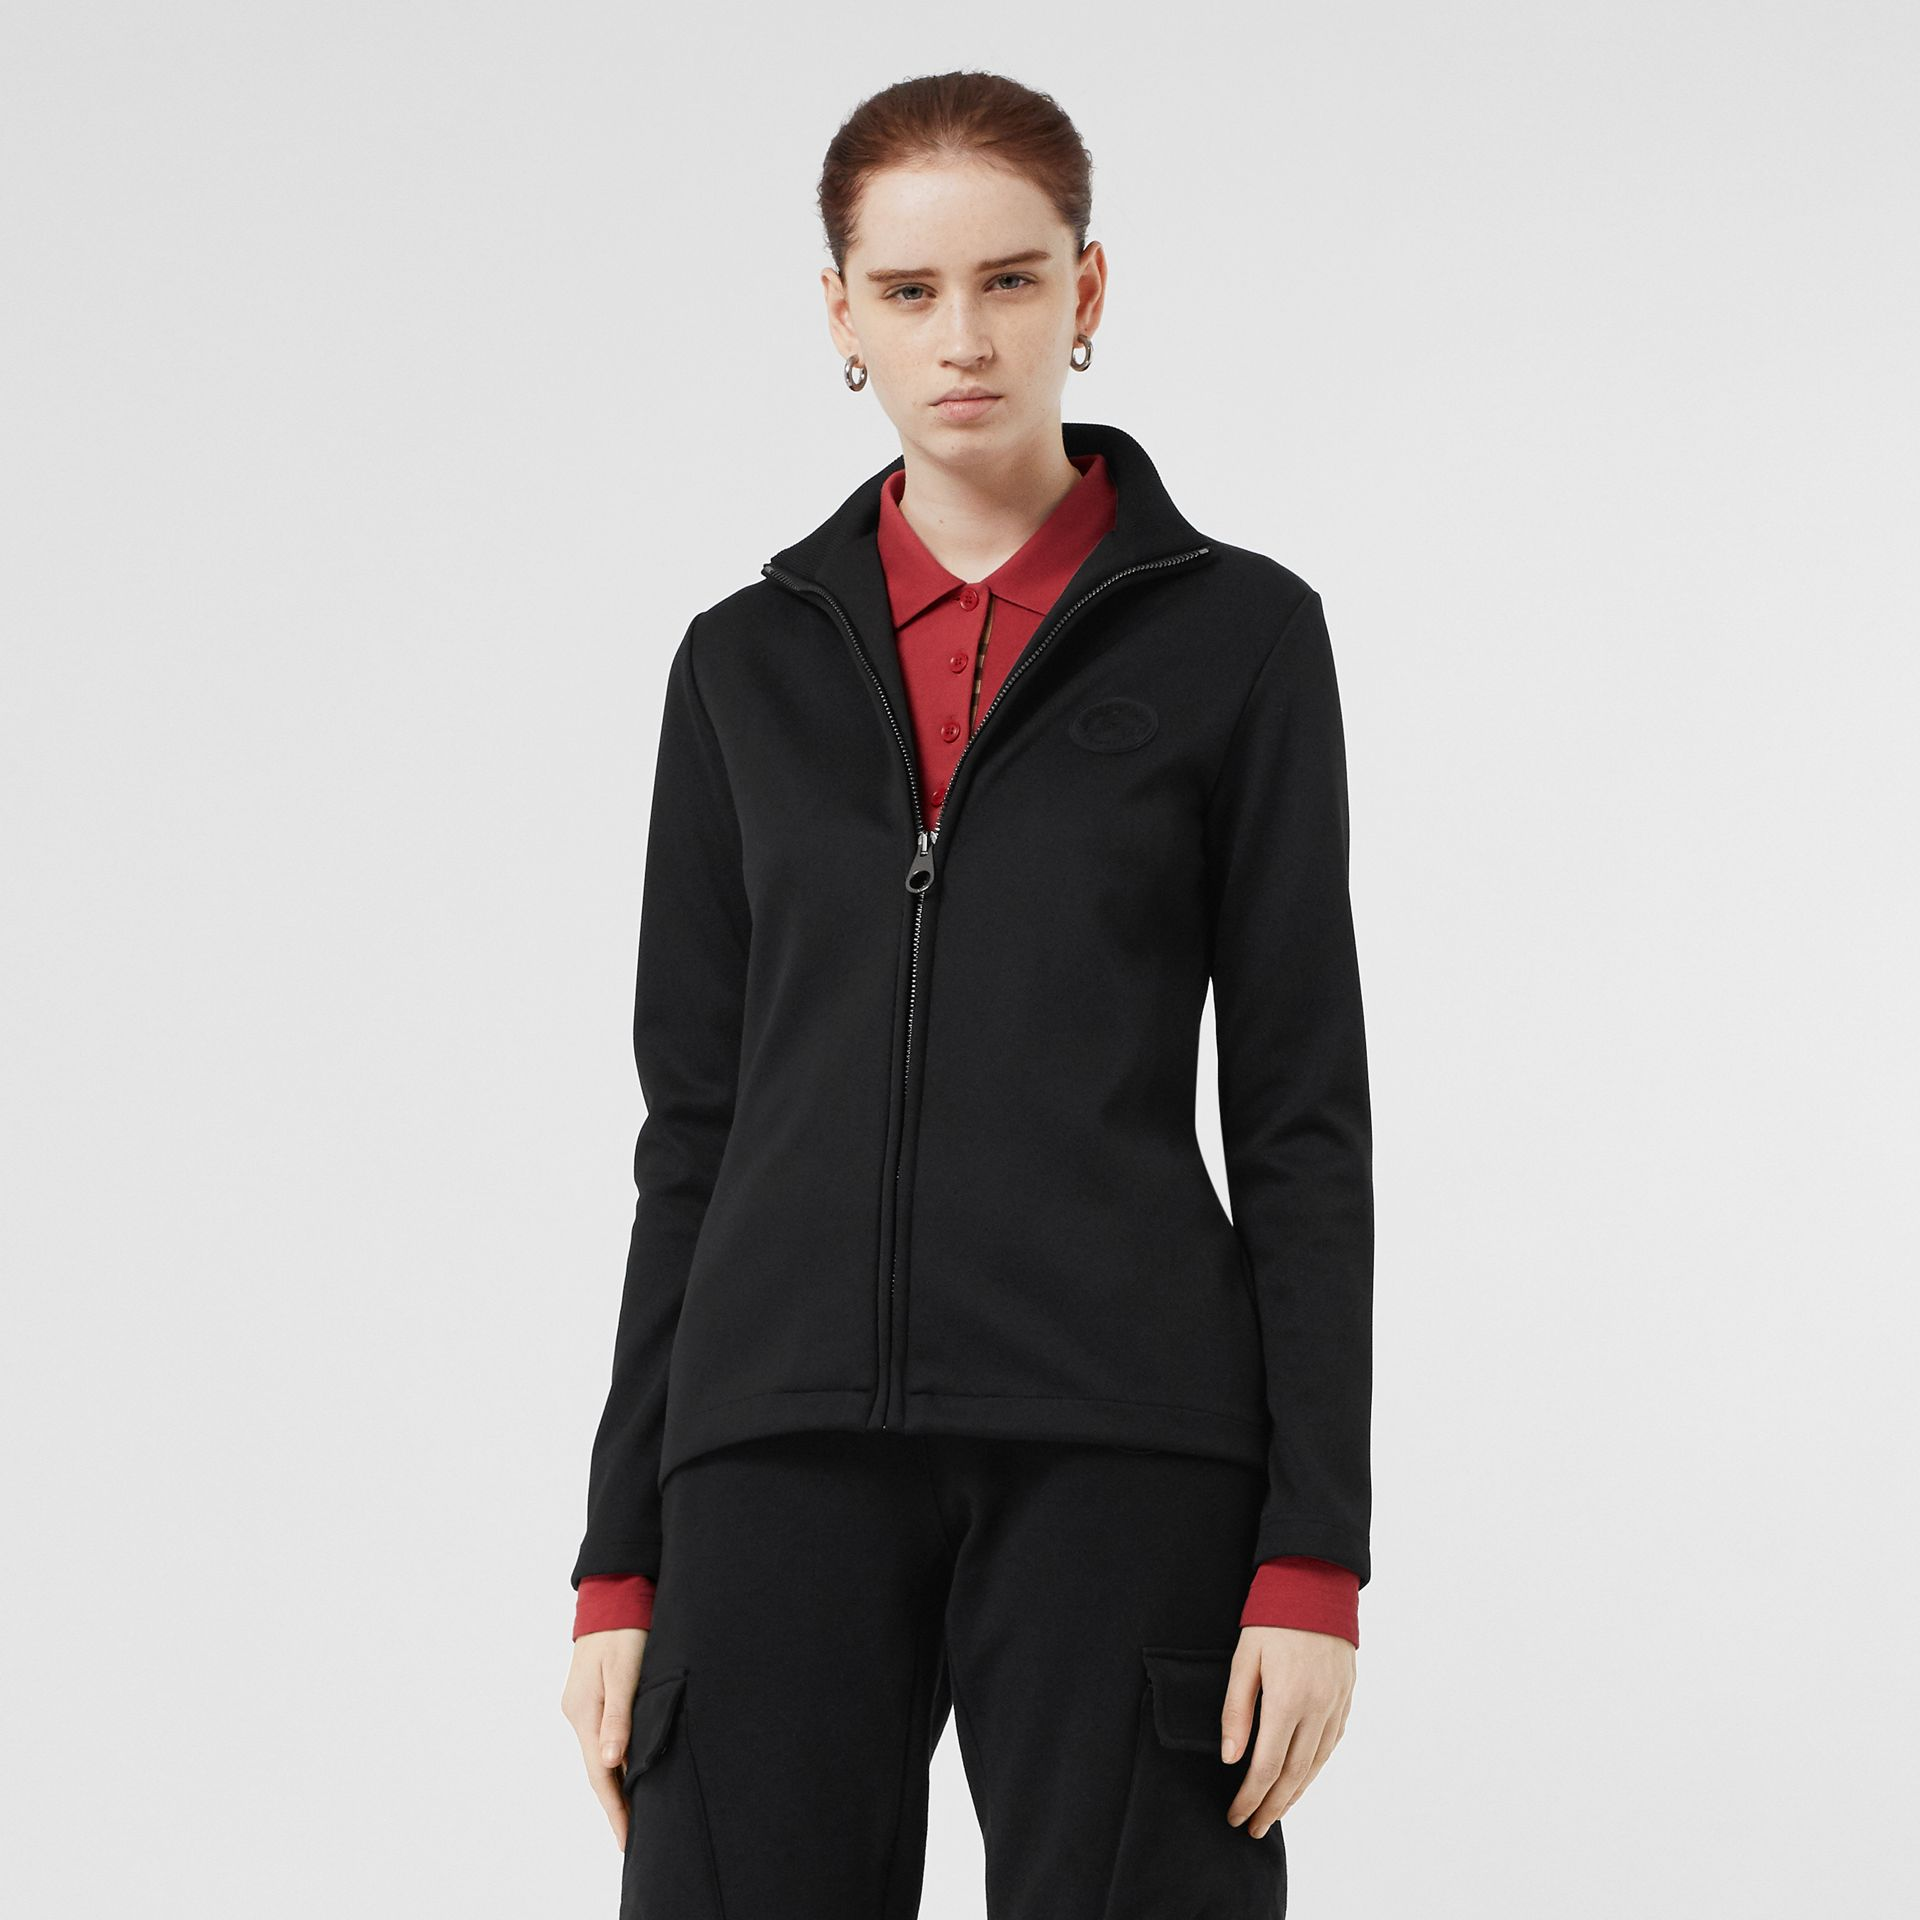 Crest Detail Funnel Neck Track Top in Black - Women | Burberry United States - gallery image 4